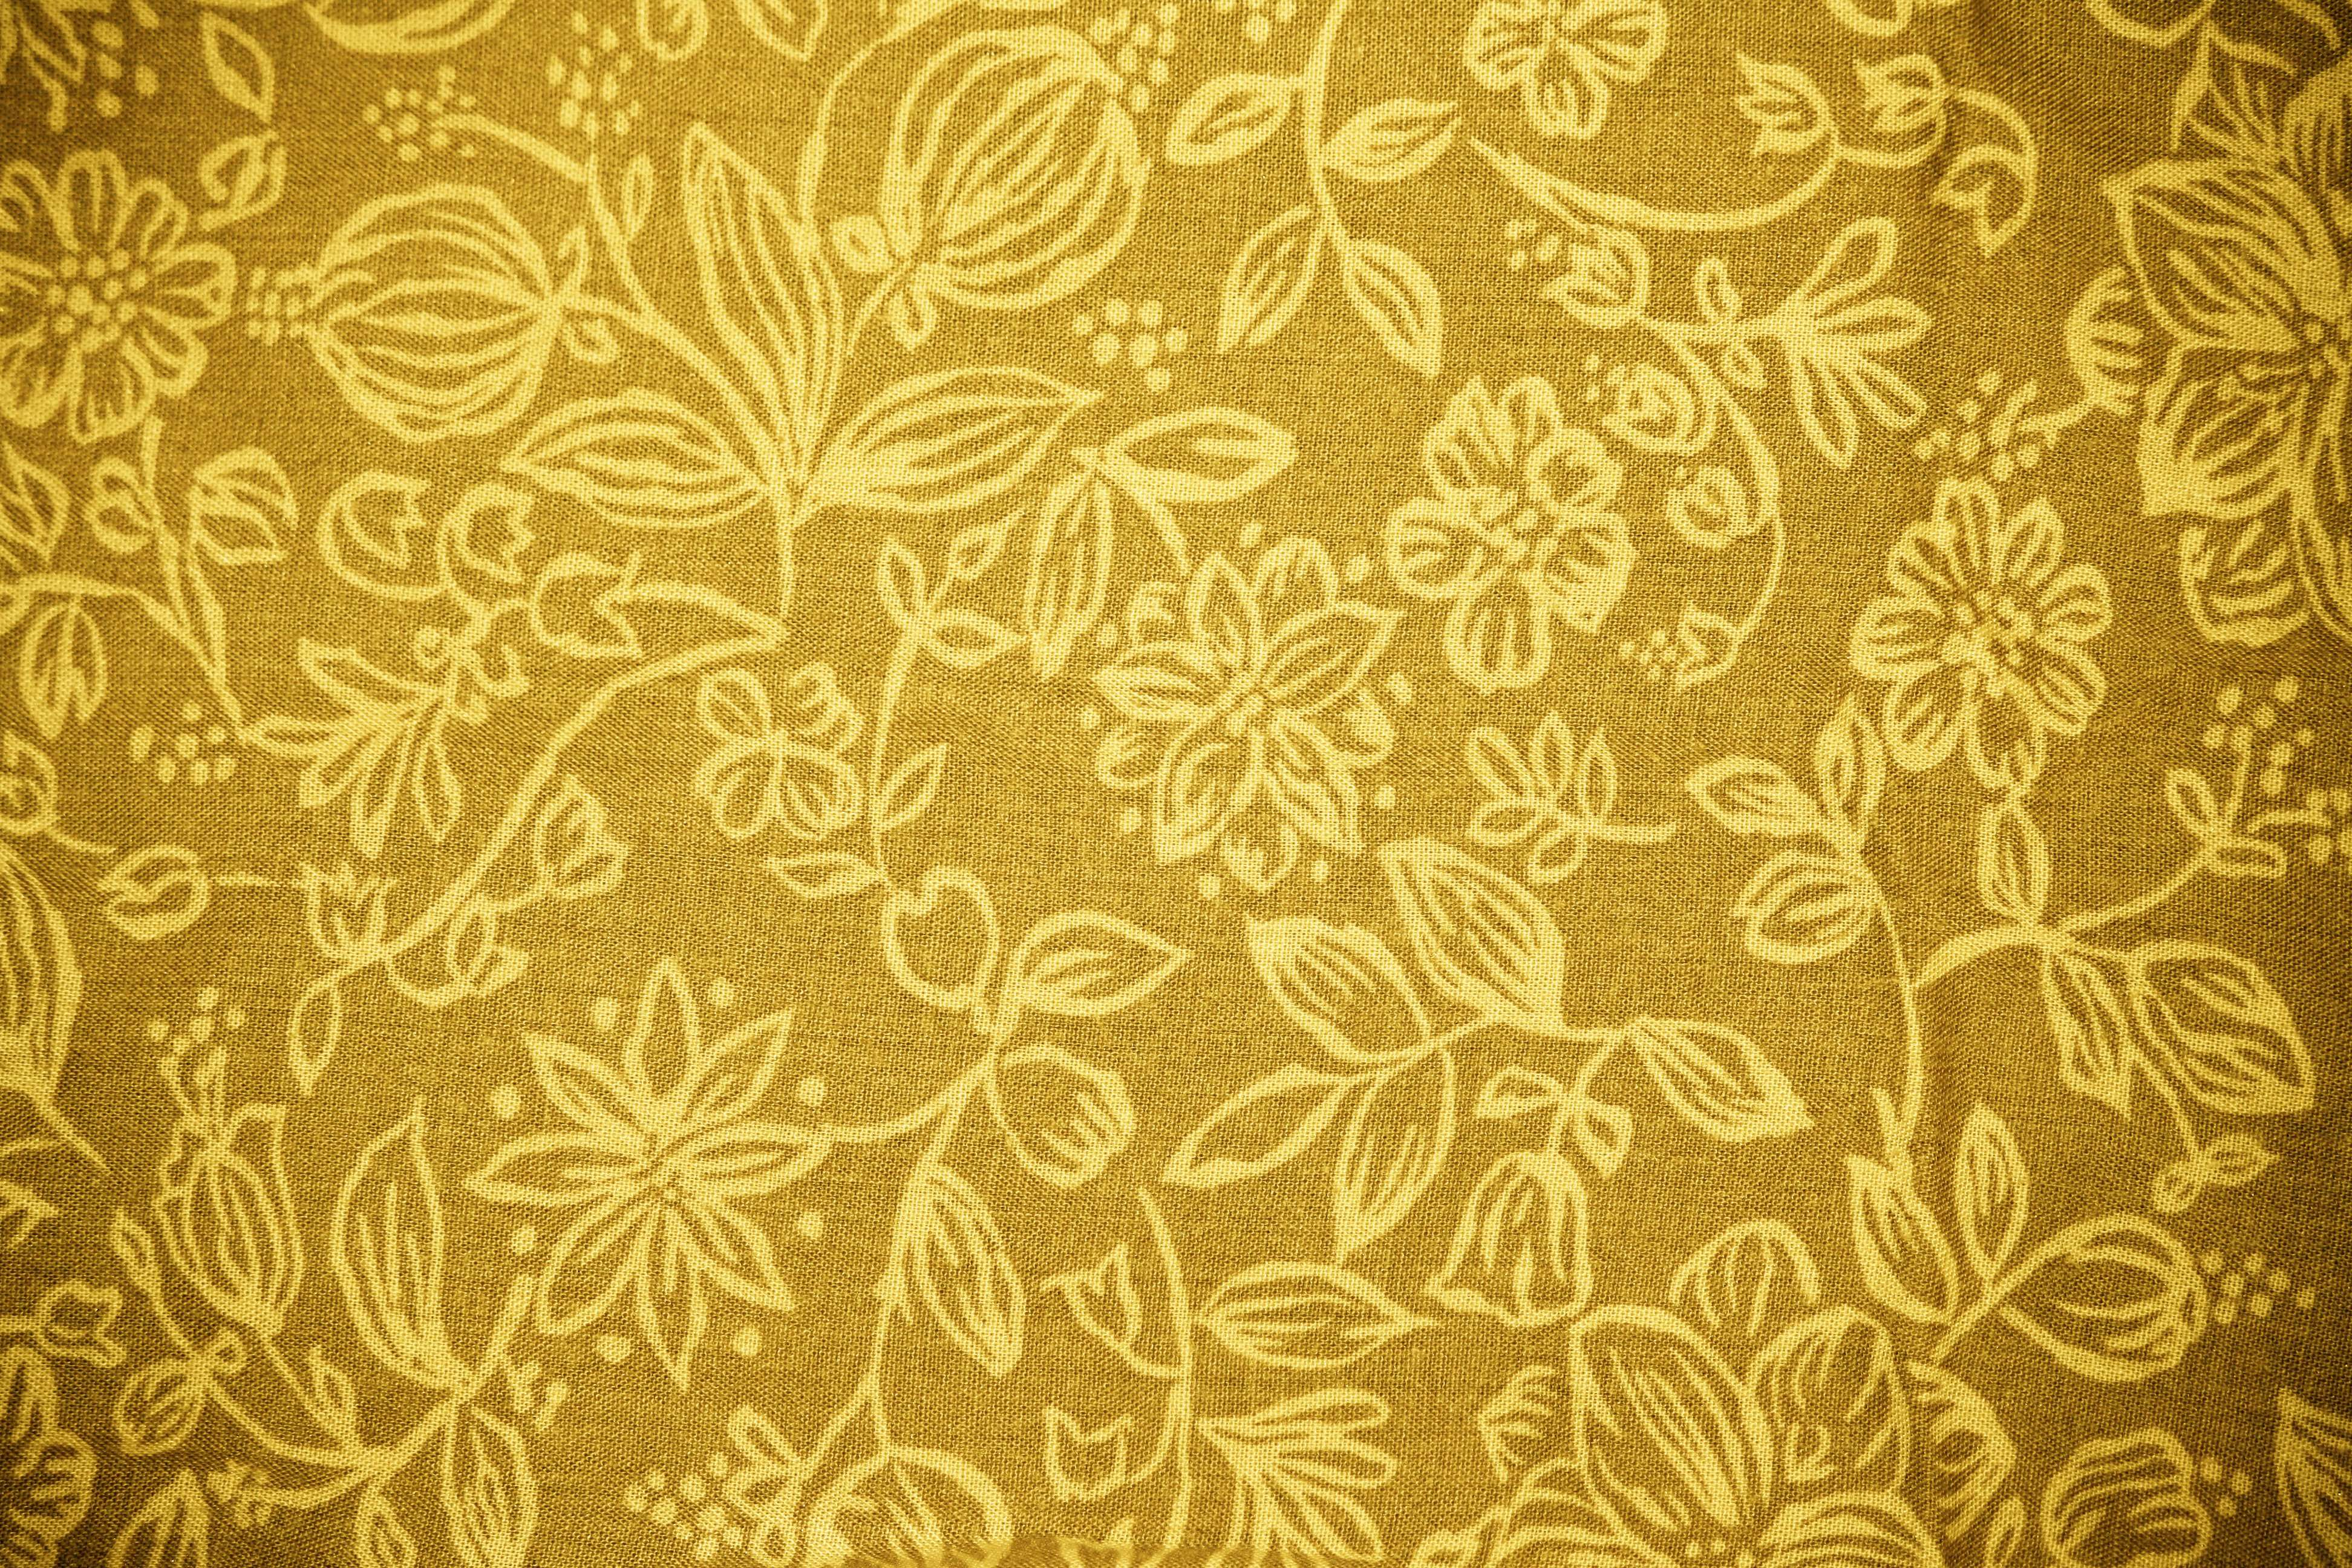 Gold Fabric Floral Pattern Texture